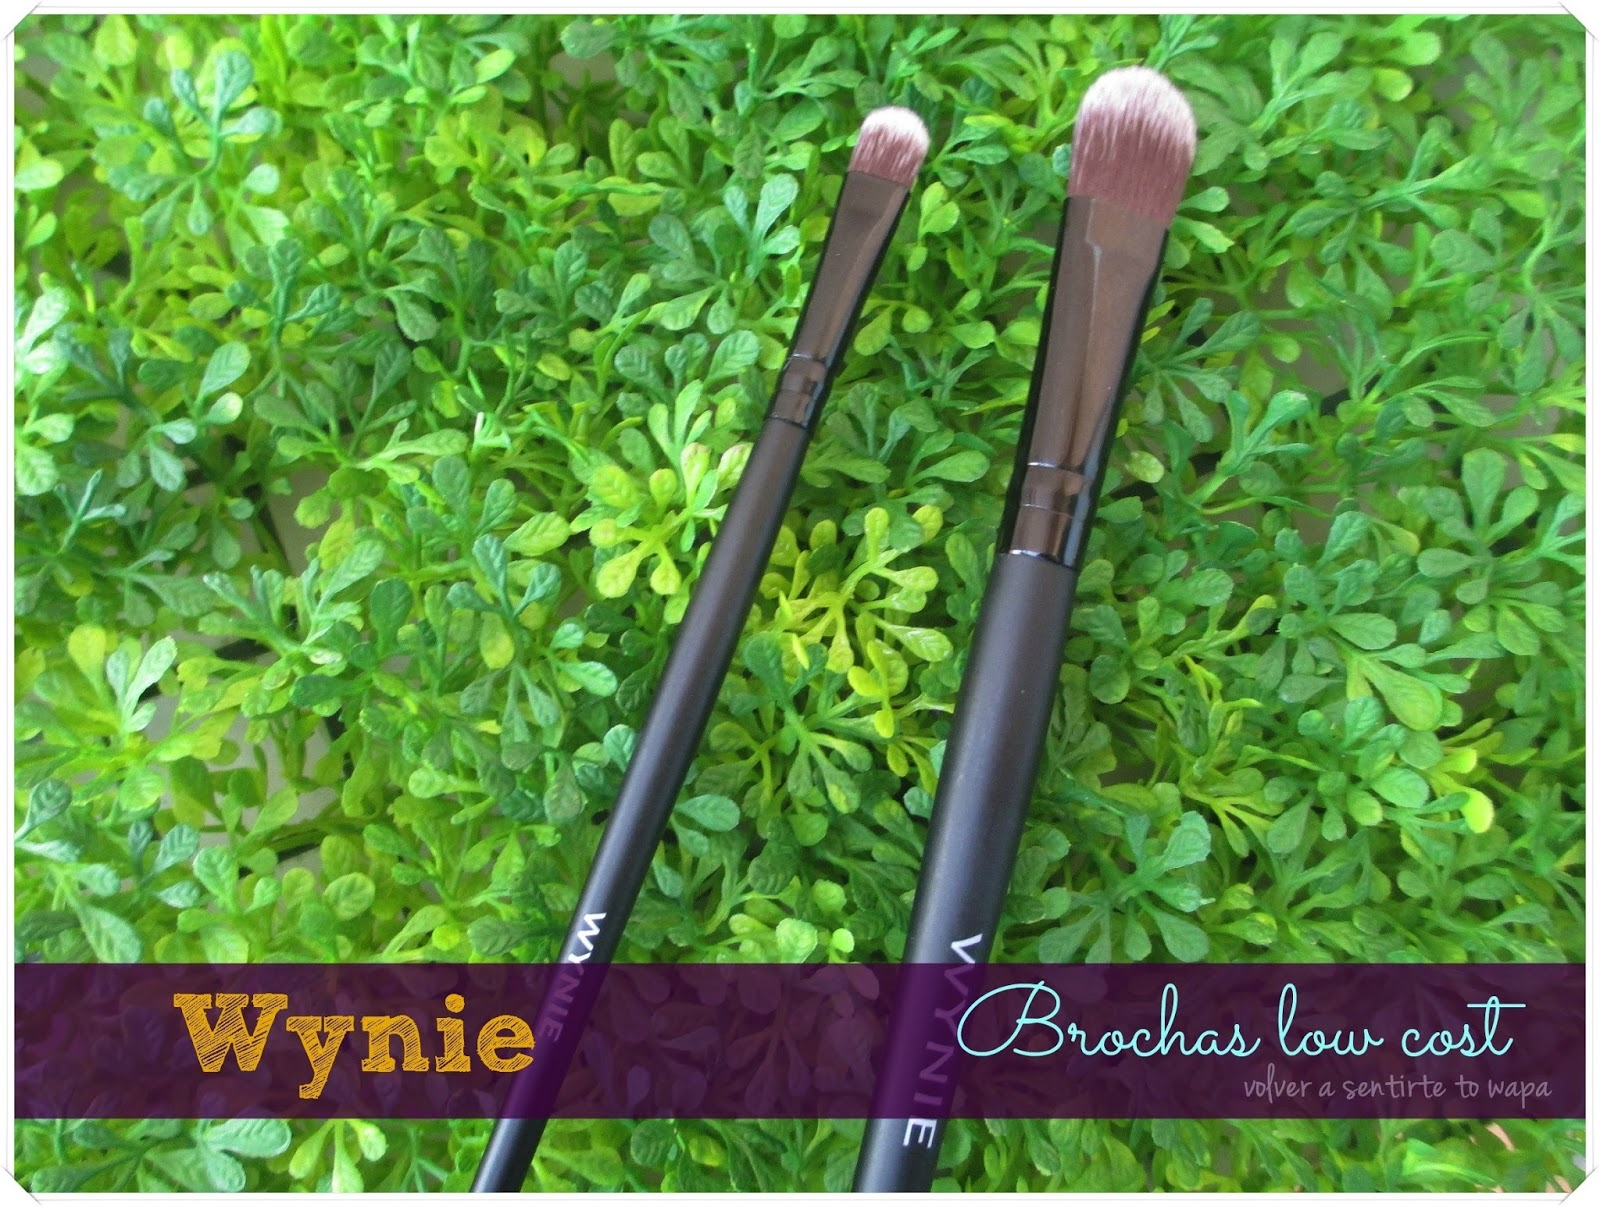 Brochas low cost - Wynie {review}